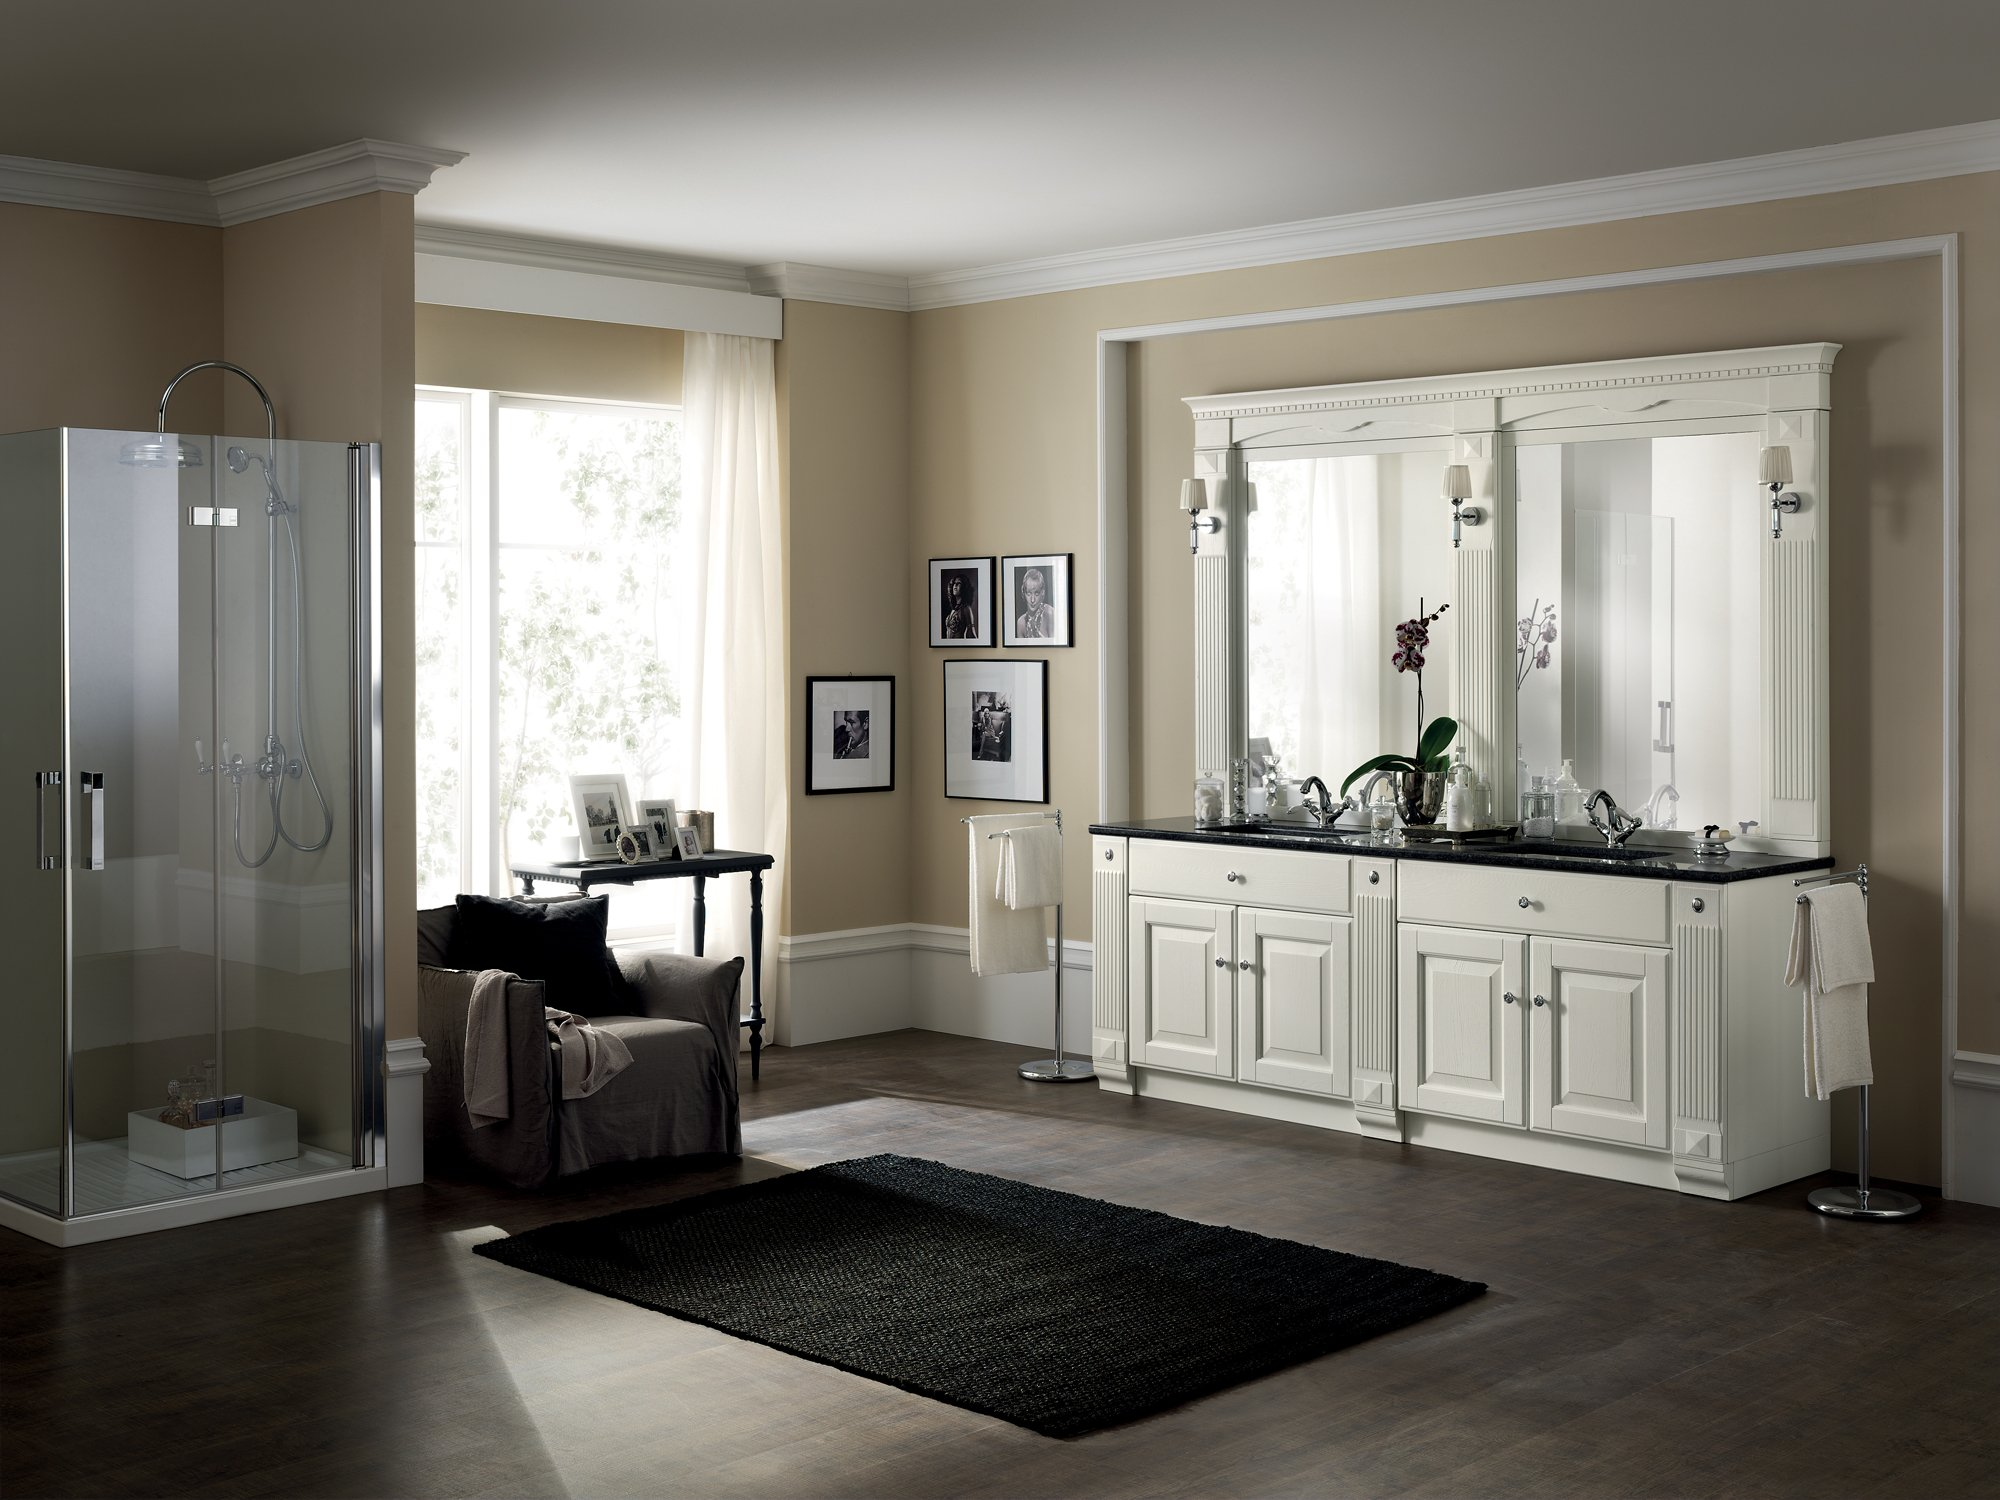 Arredo bagno completo baltimora by scavolini bathrooms for Configuratore arredamento